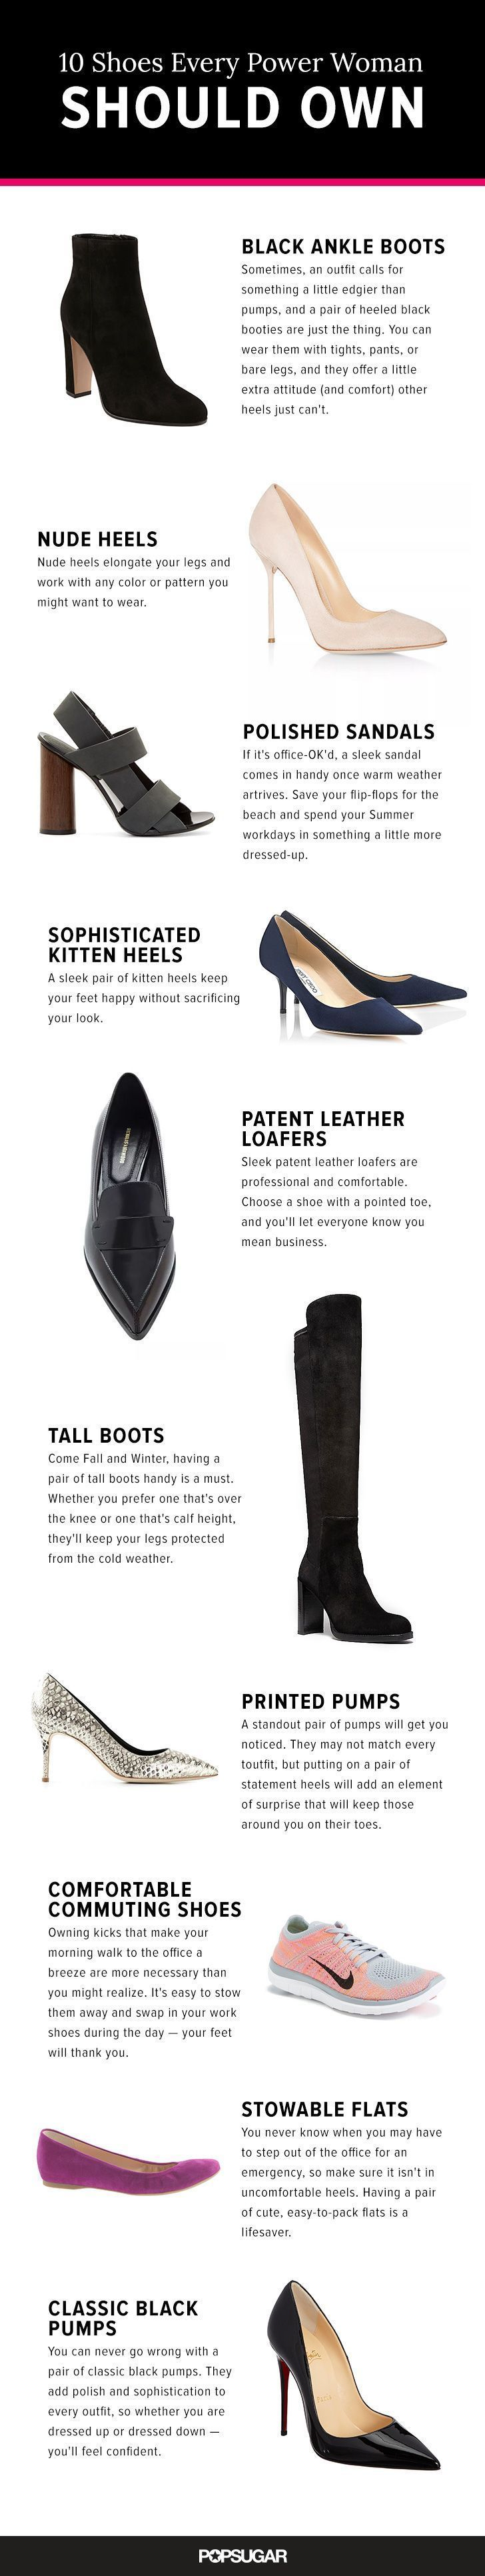 10 Shoes No Working Woman Should Be